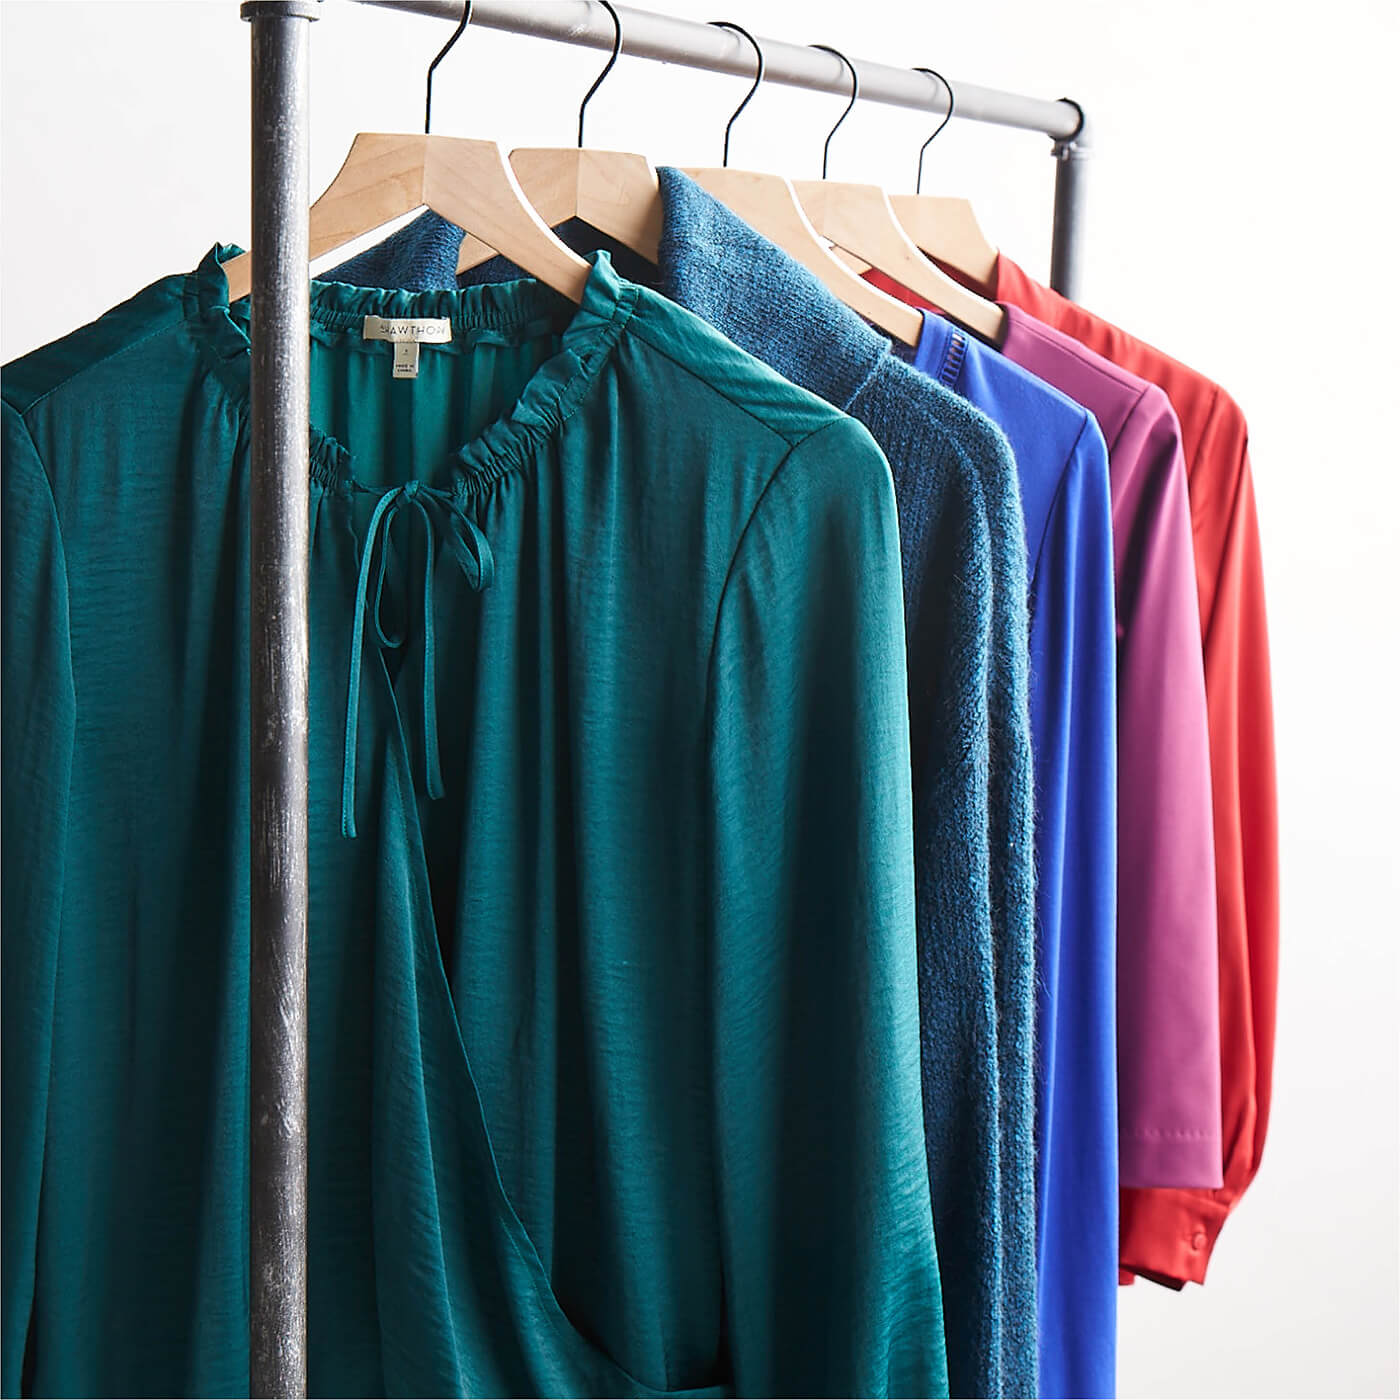 426c1b149 How often should I dry clean my clothes? | Stitch Fix Style